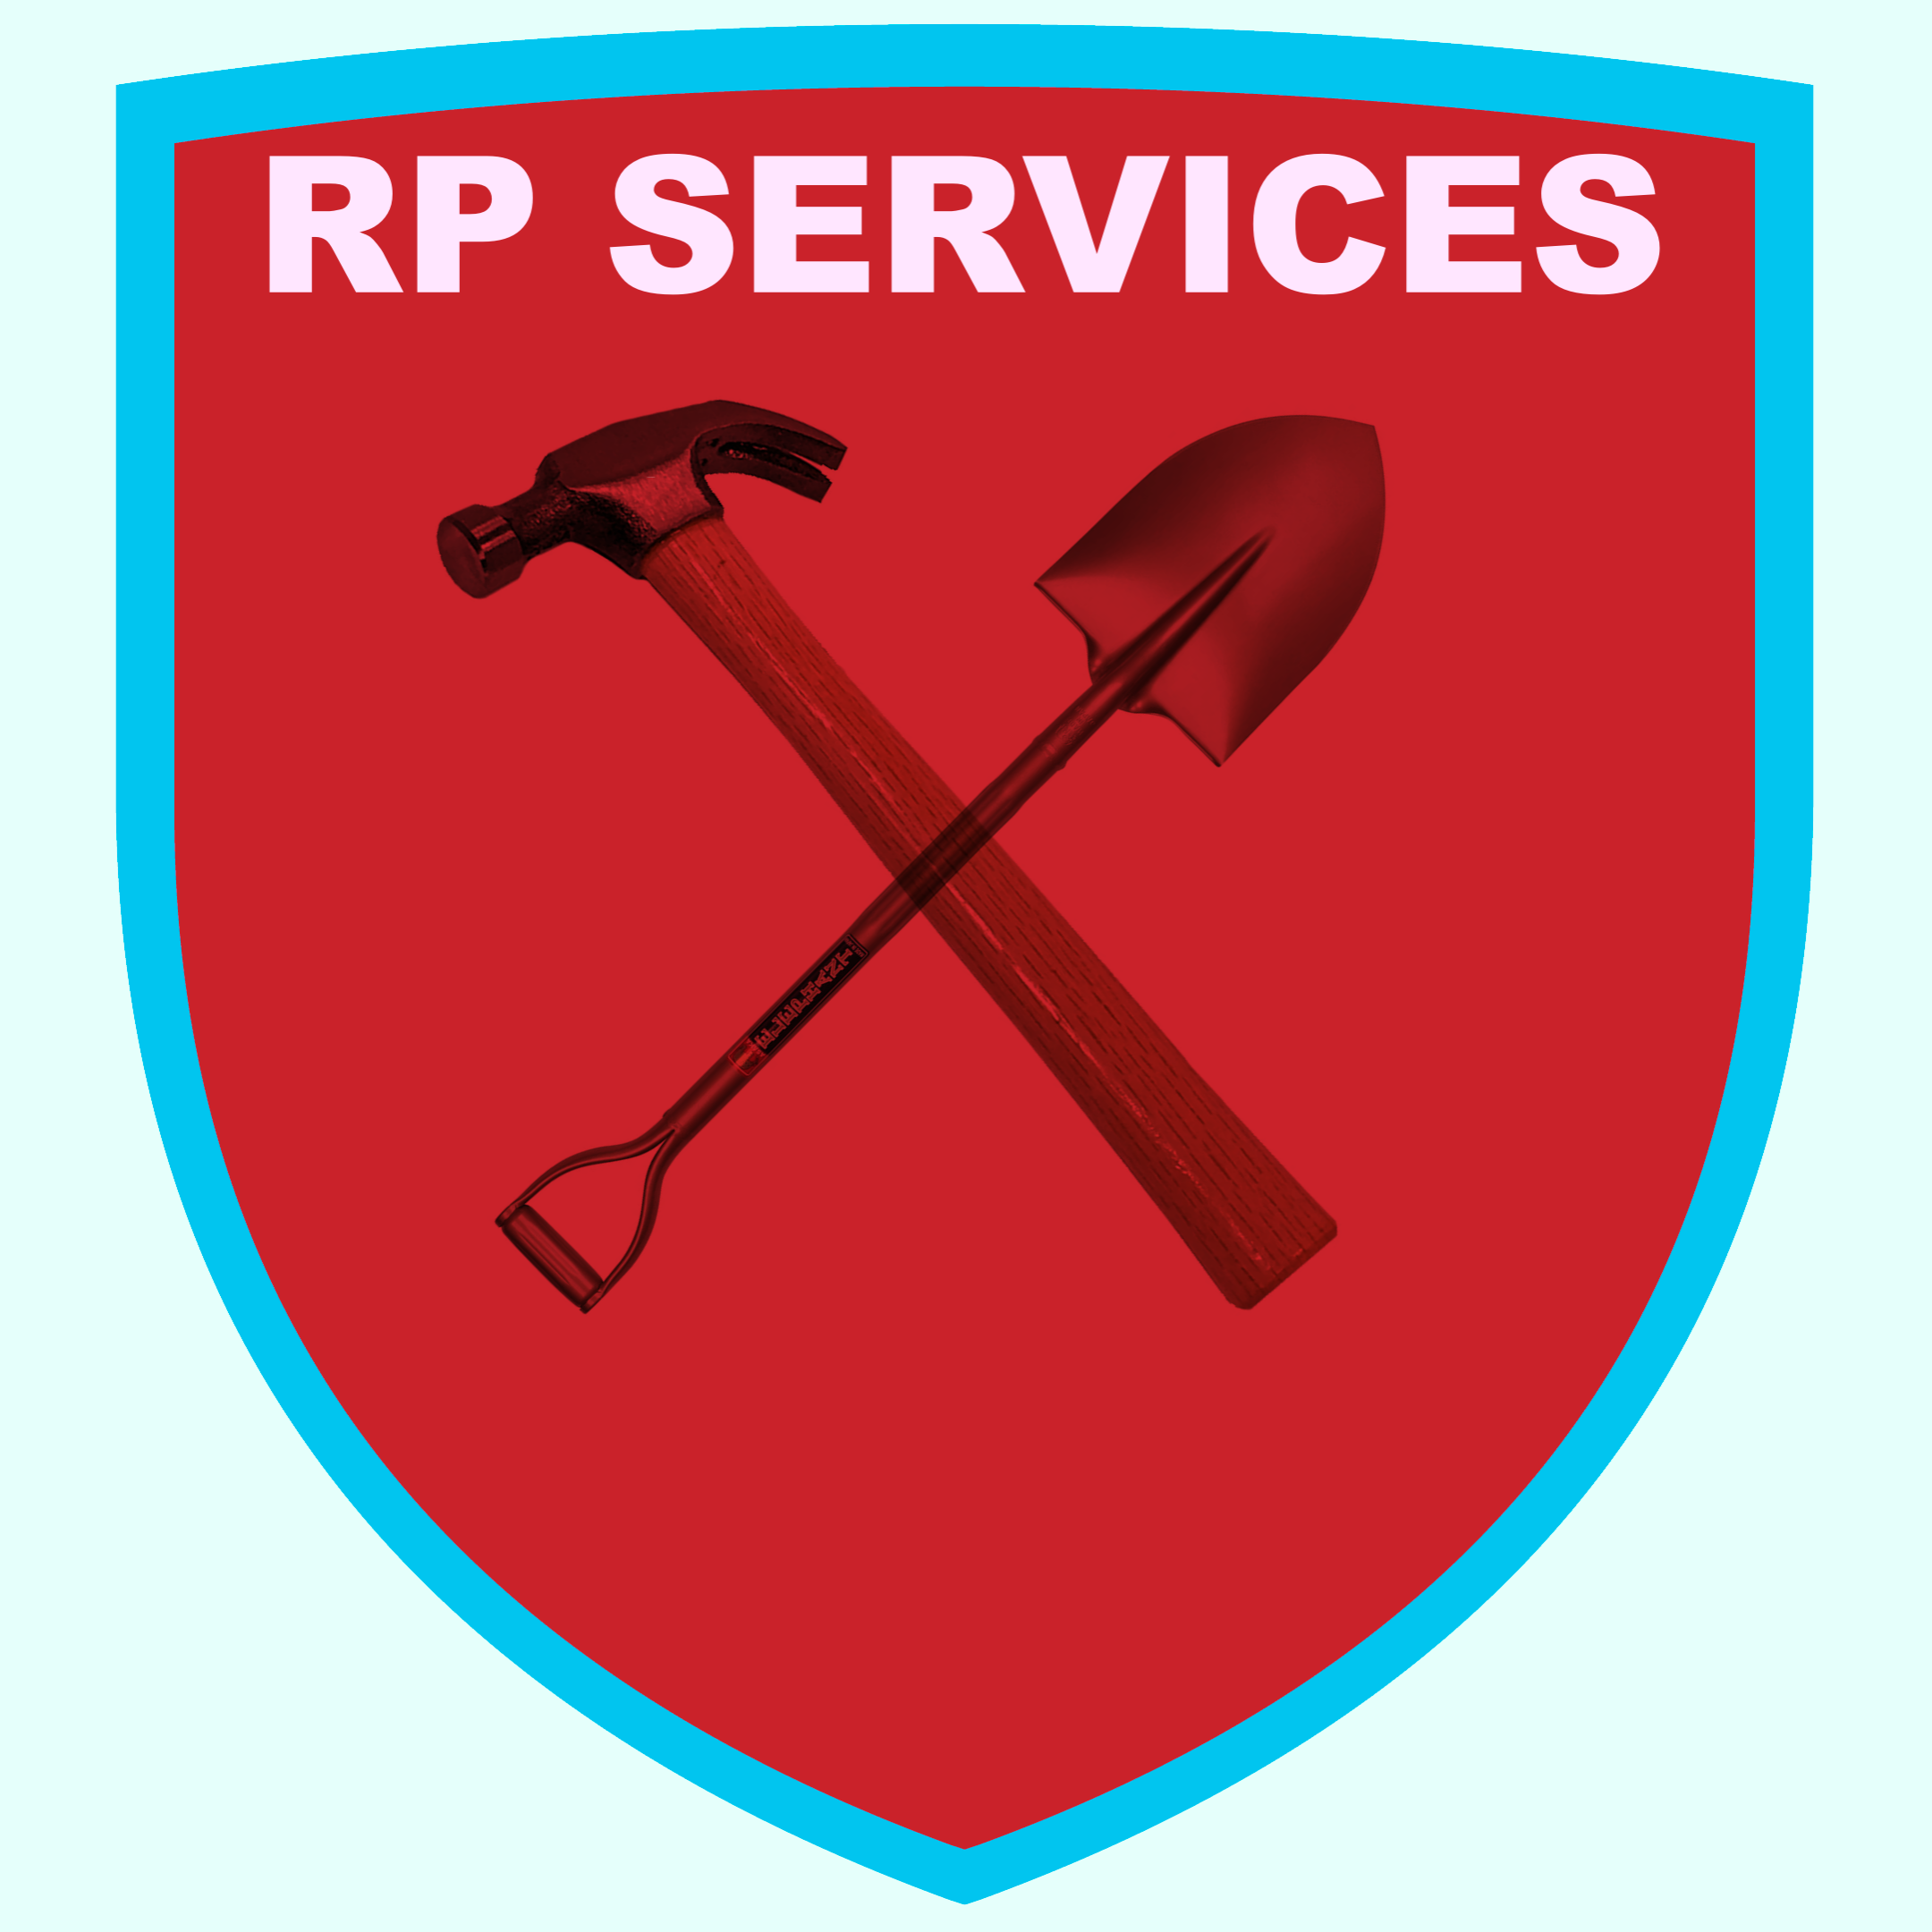 RP Services - Building, Landscaping, & Repairs